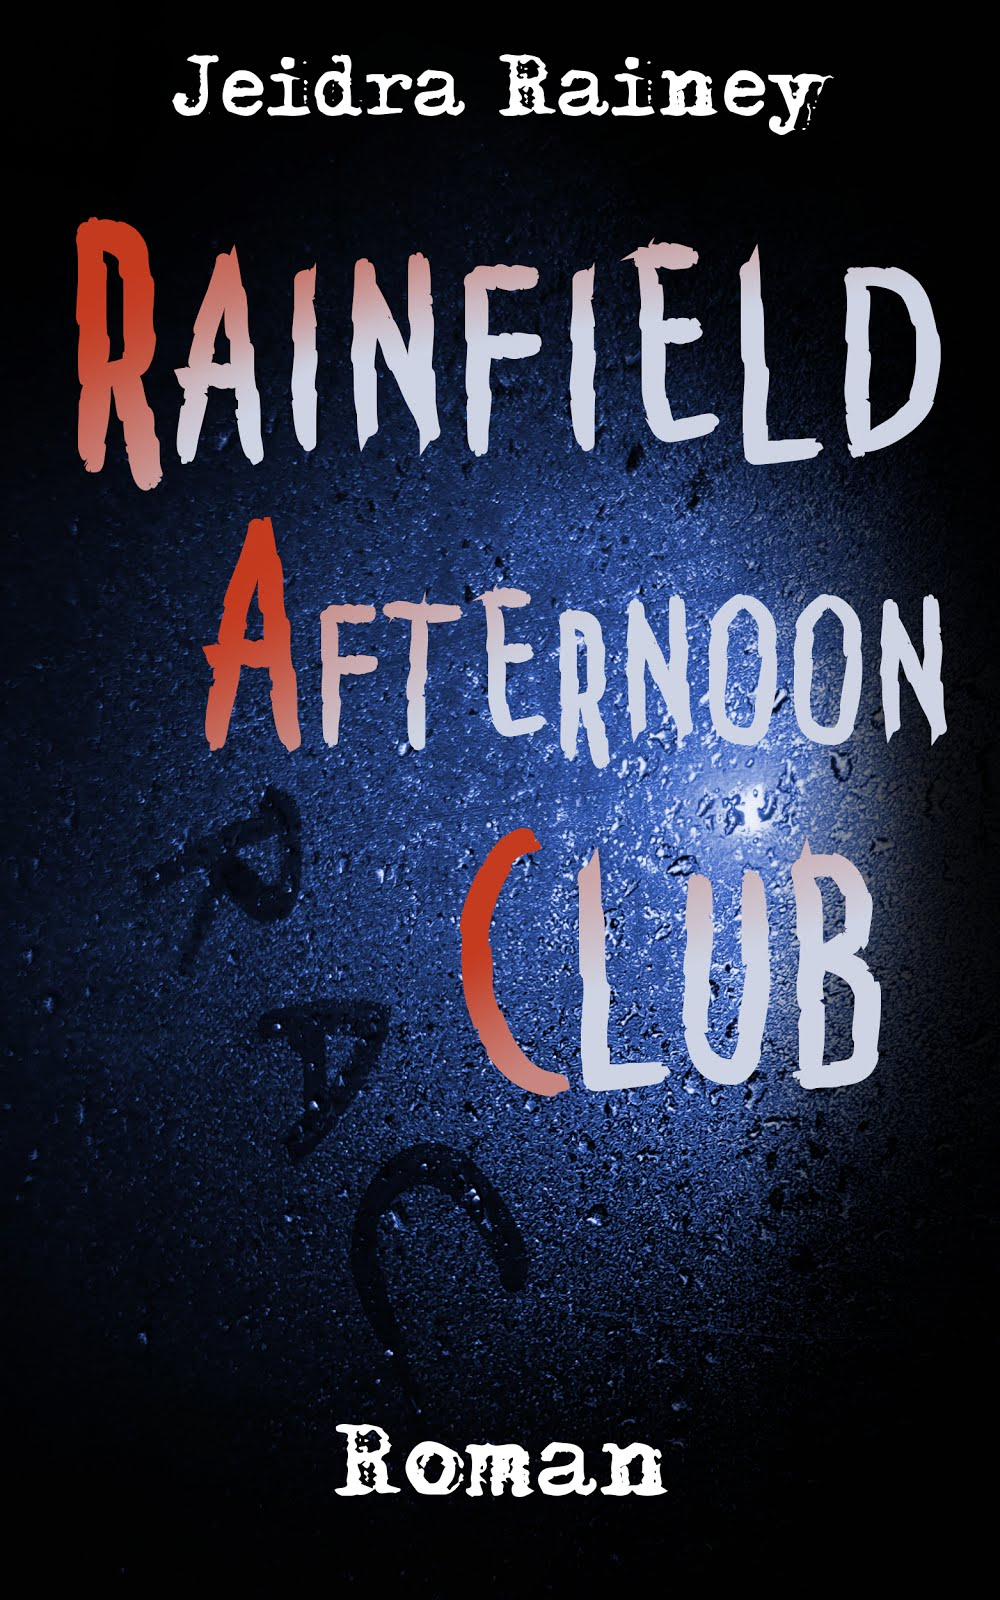 Rainfield Afternoon Club